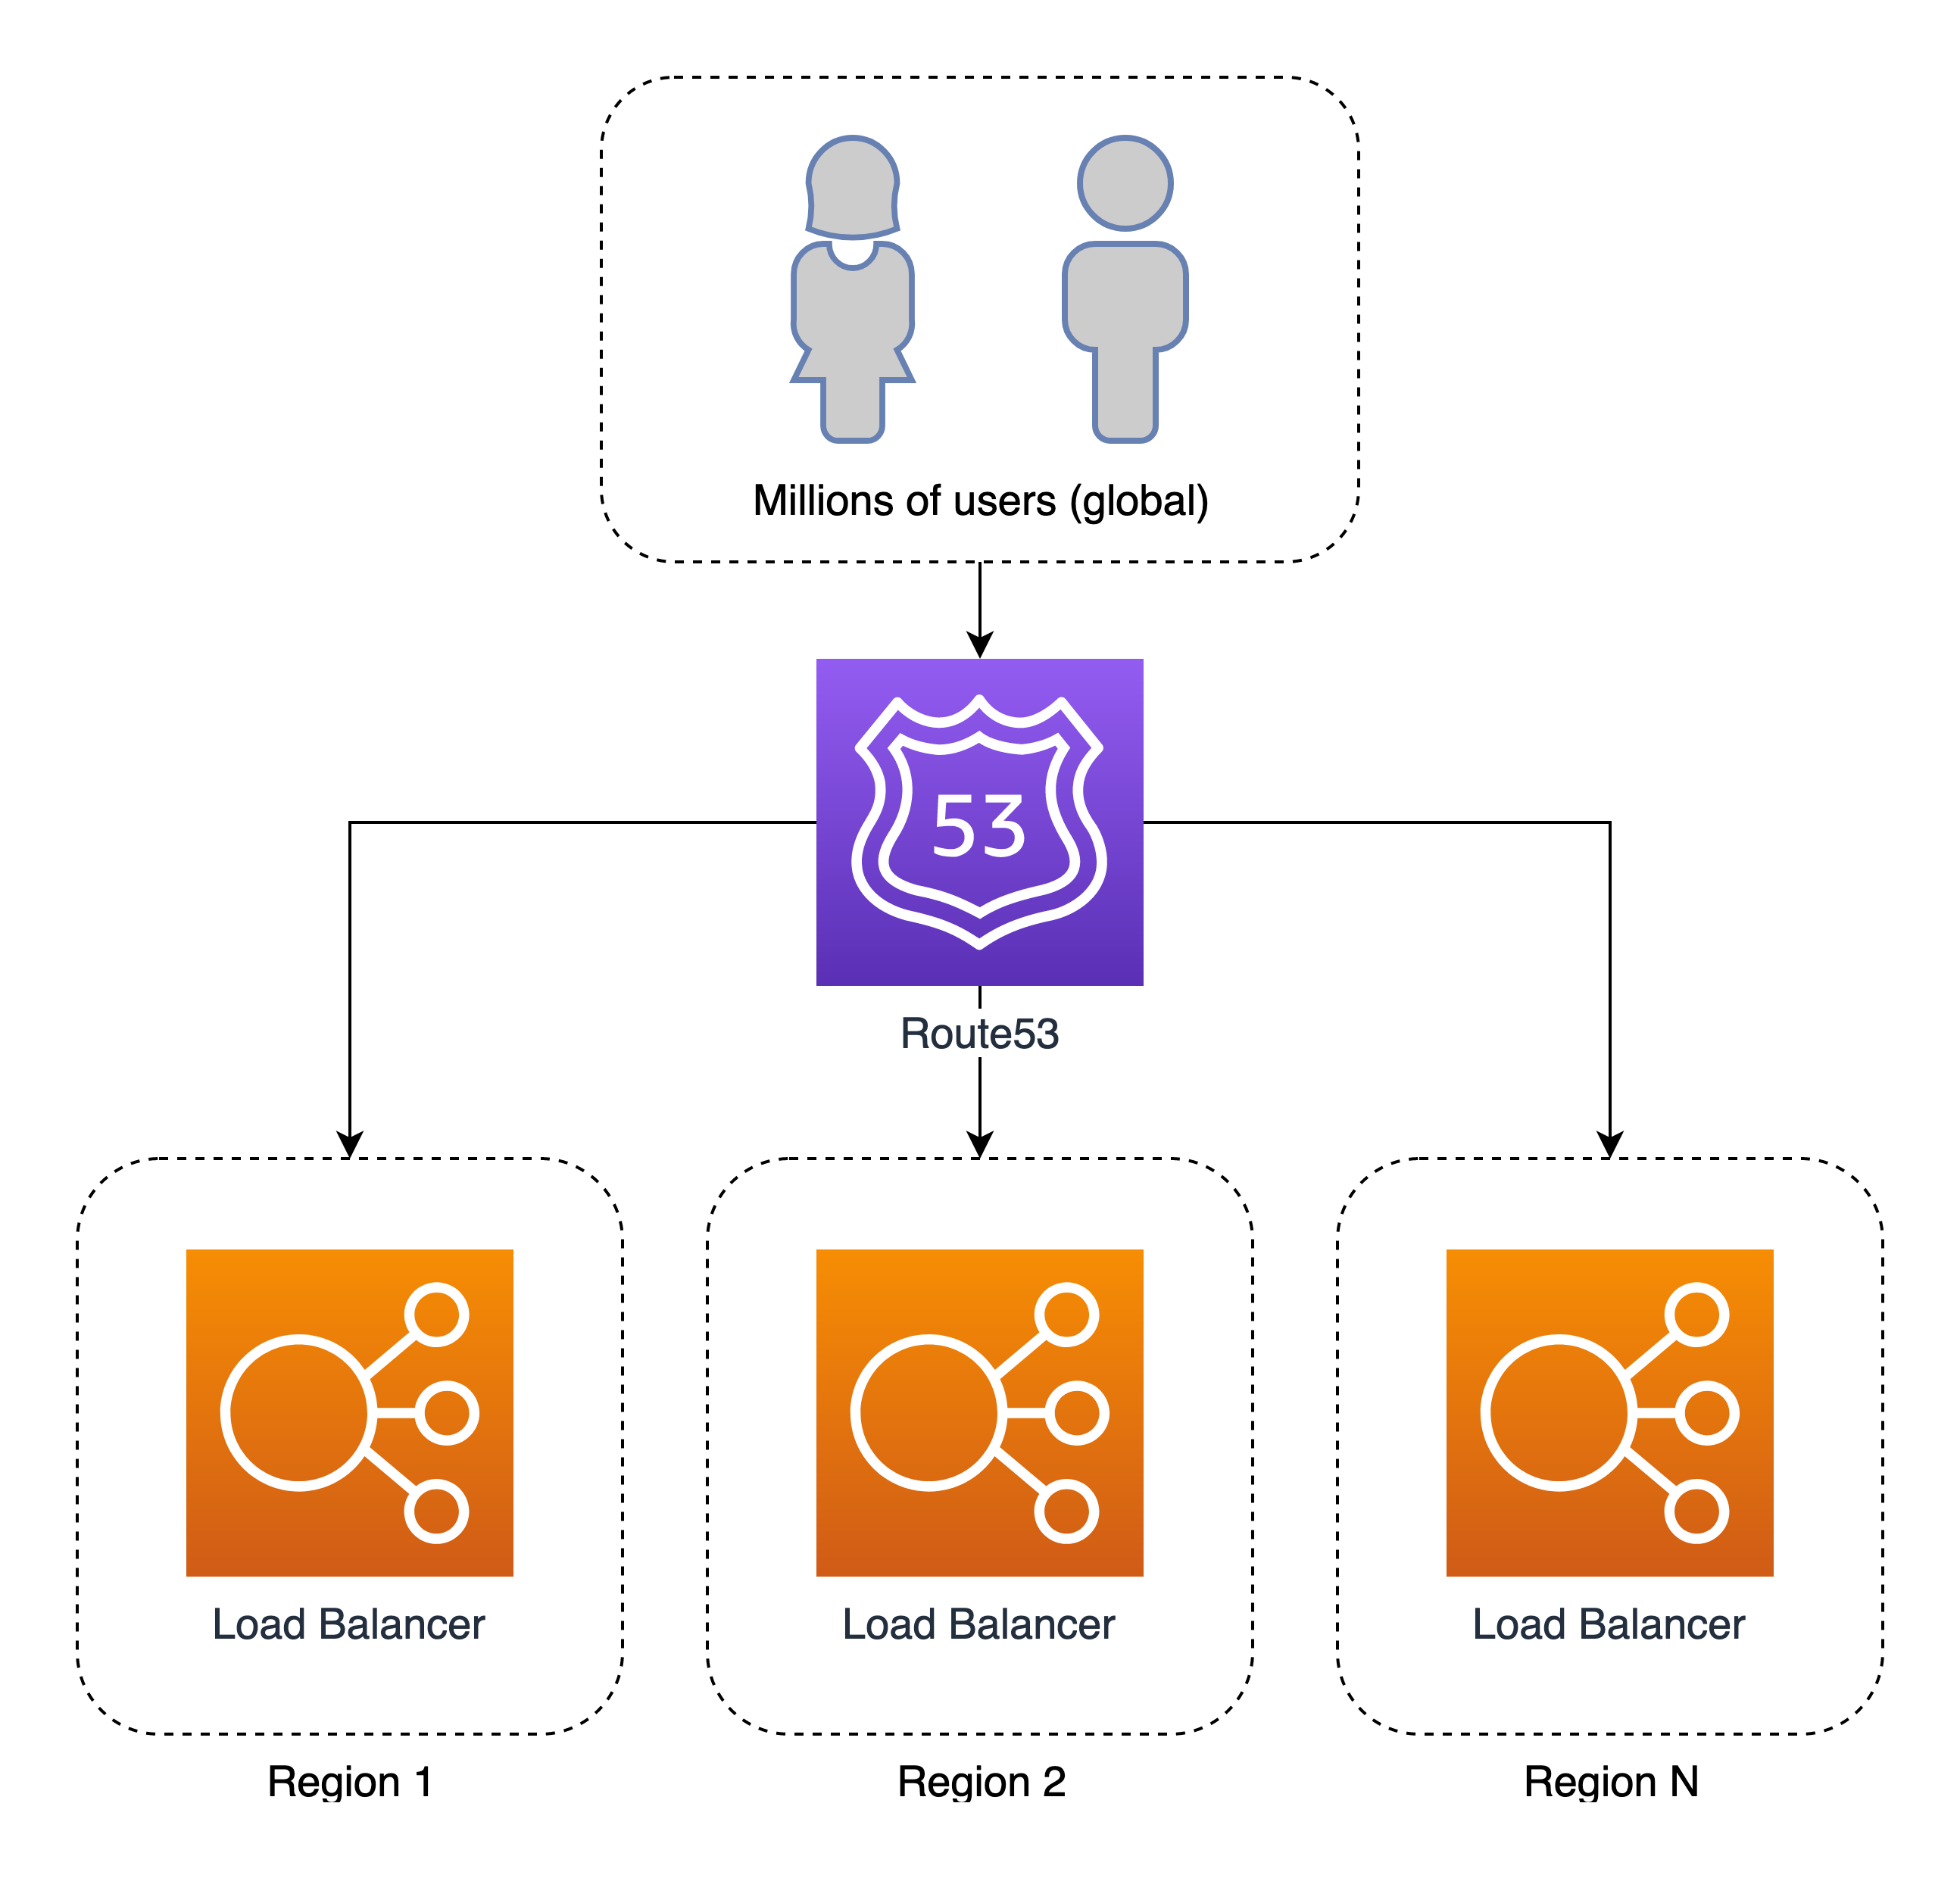 How to implement the perfect failover strategy using Amazon